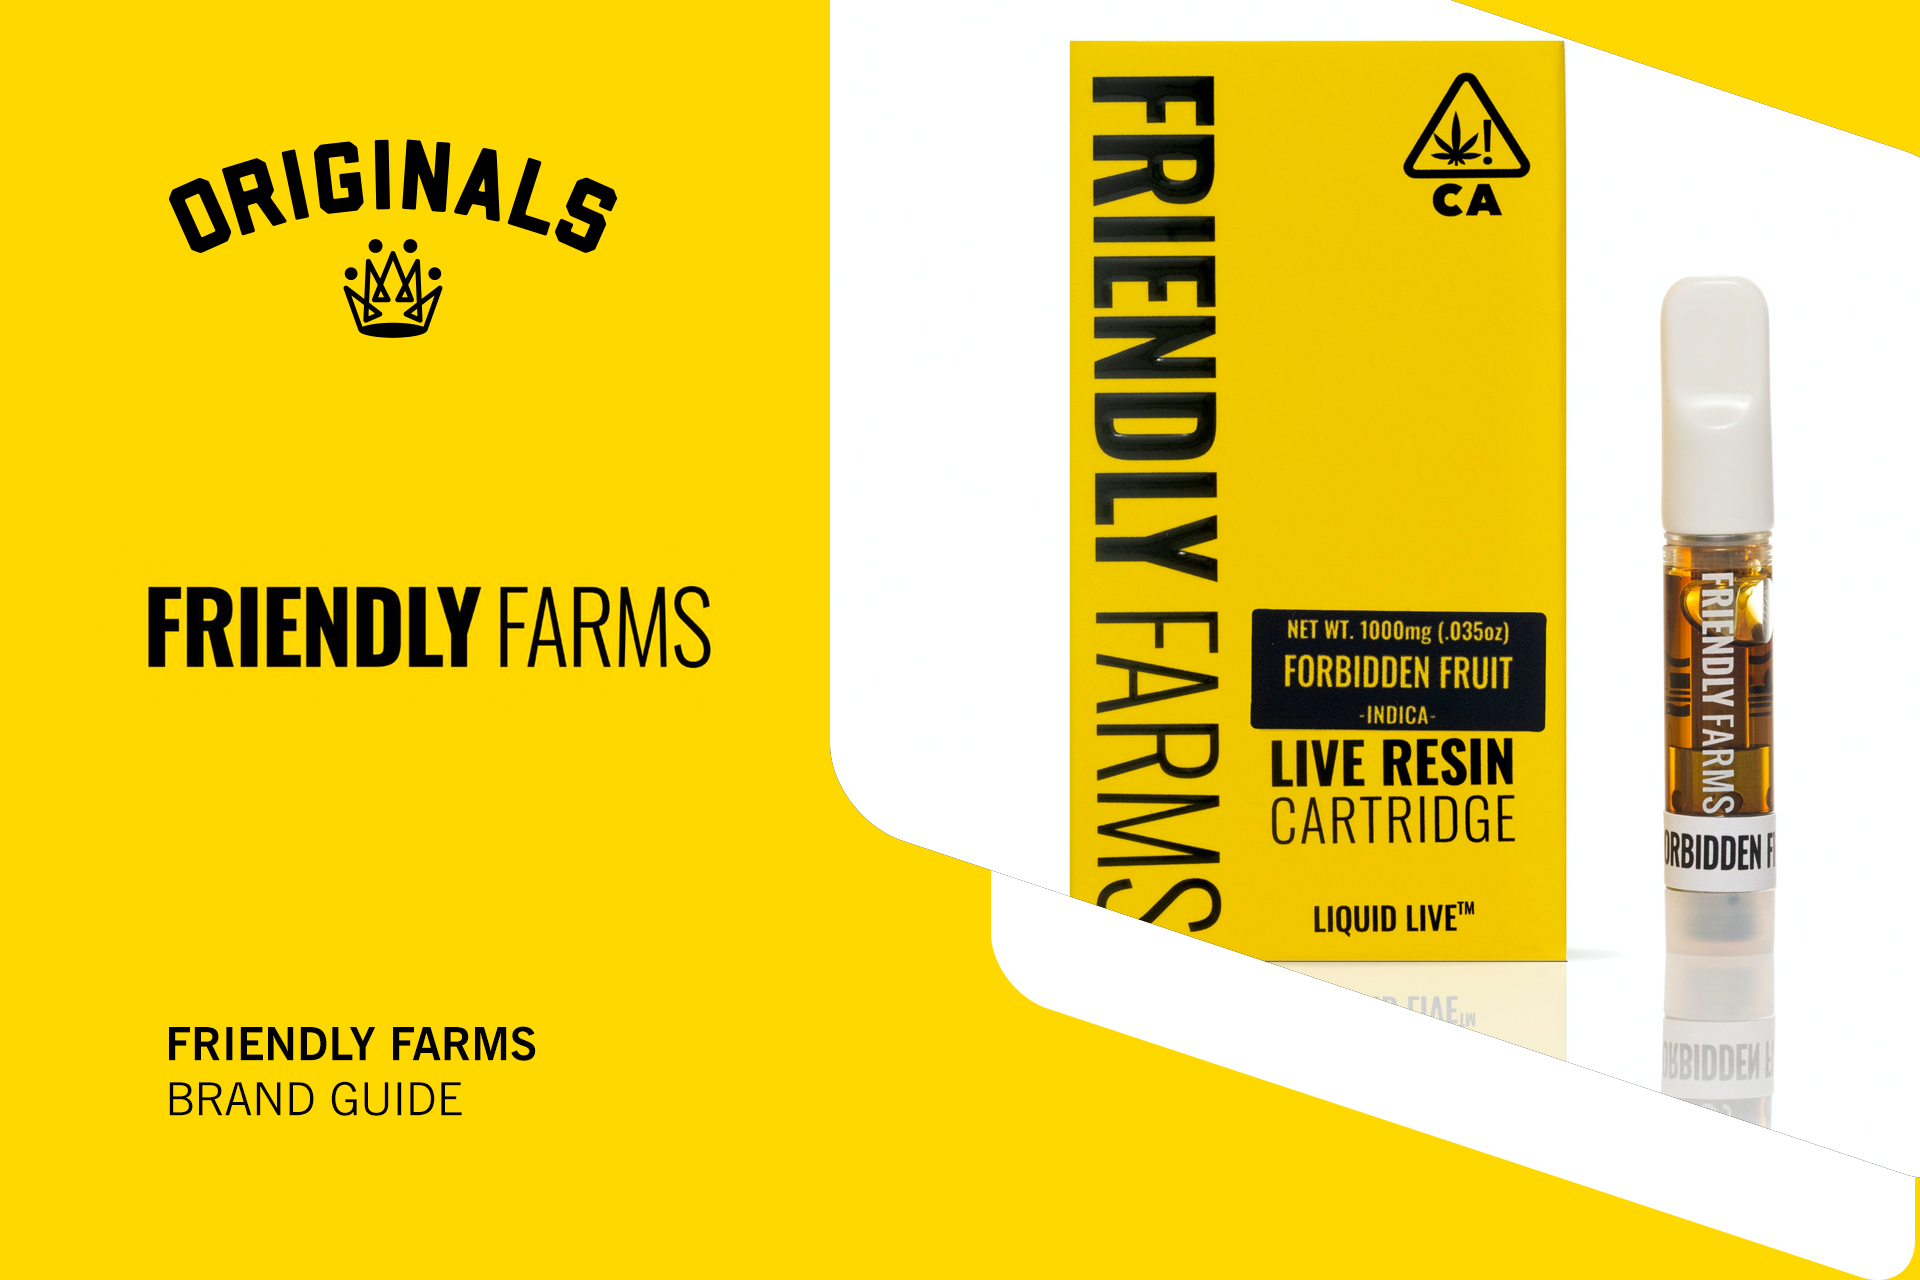 Friendly Farms Brand Guide: Live Resin Vapes, Delicious Dabs, and More At Originals